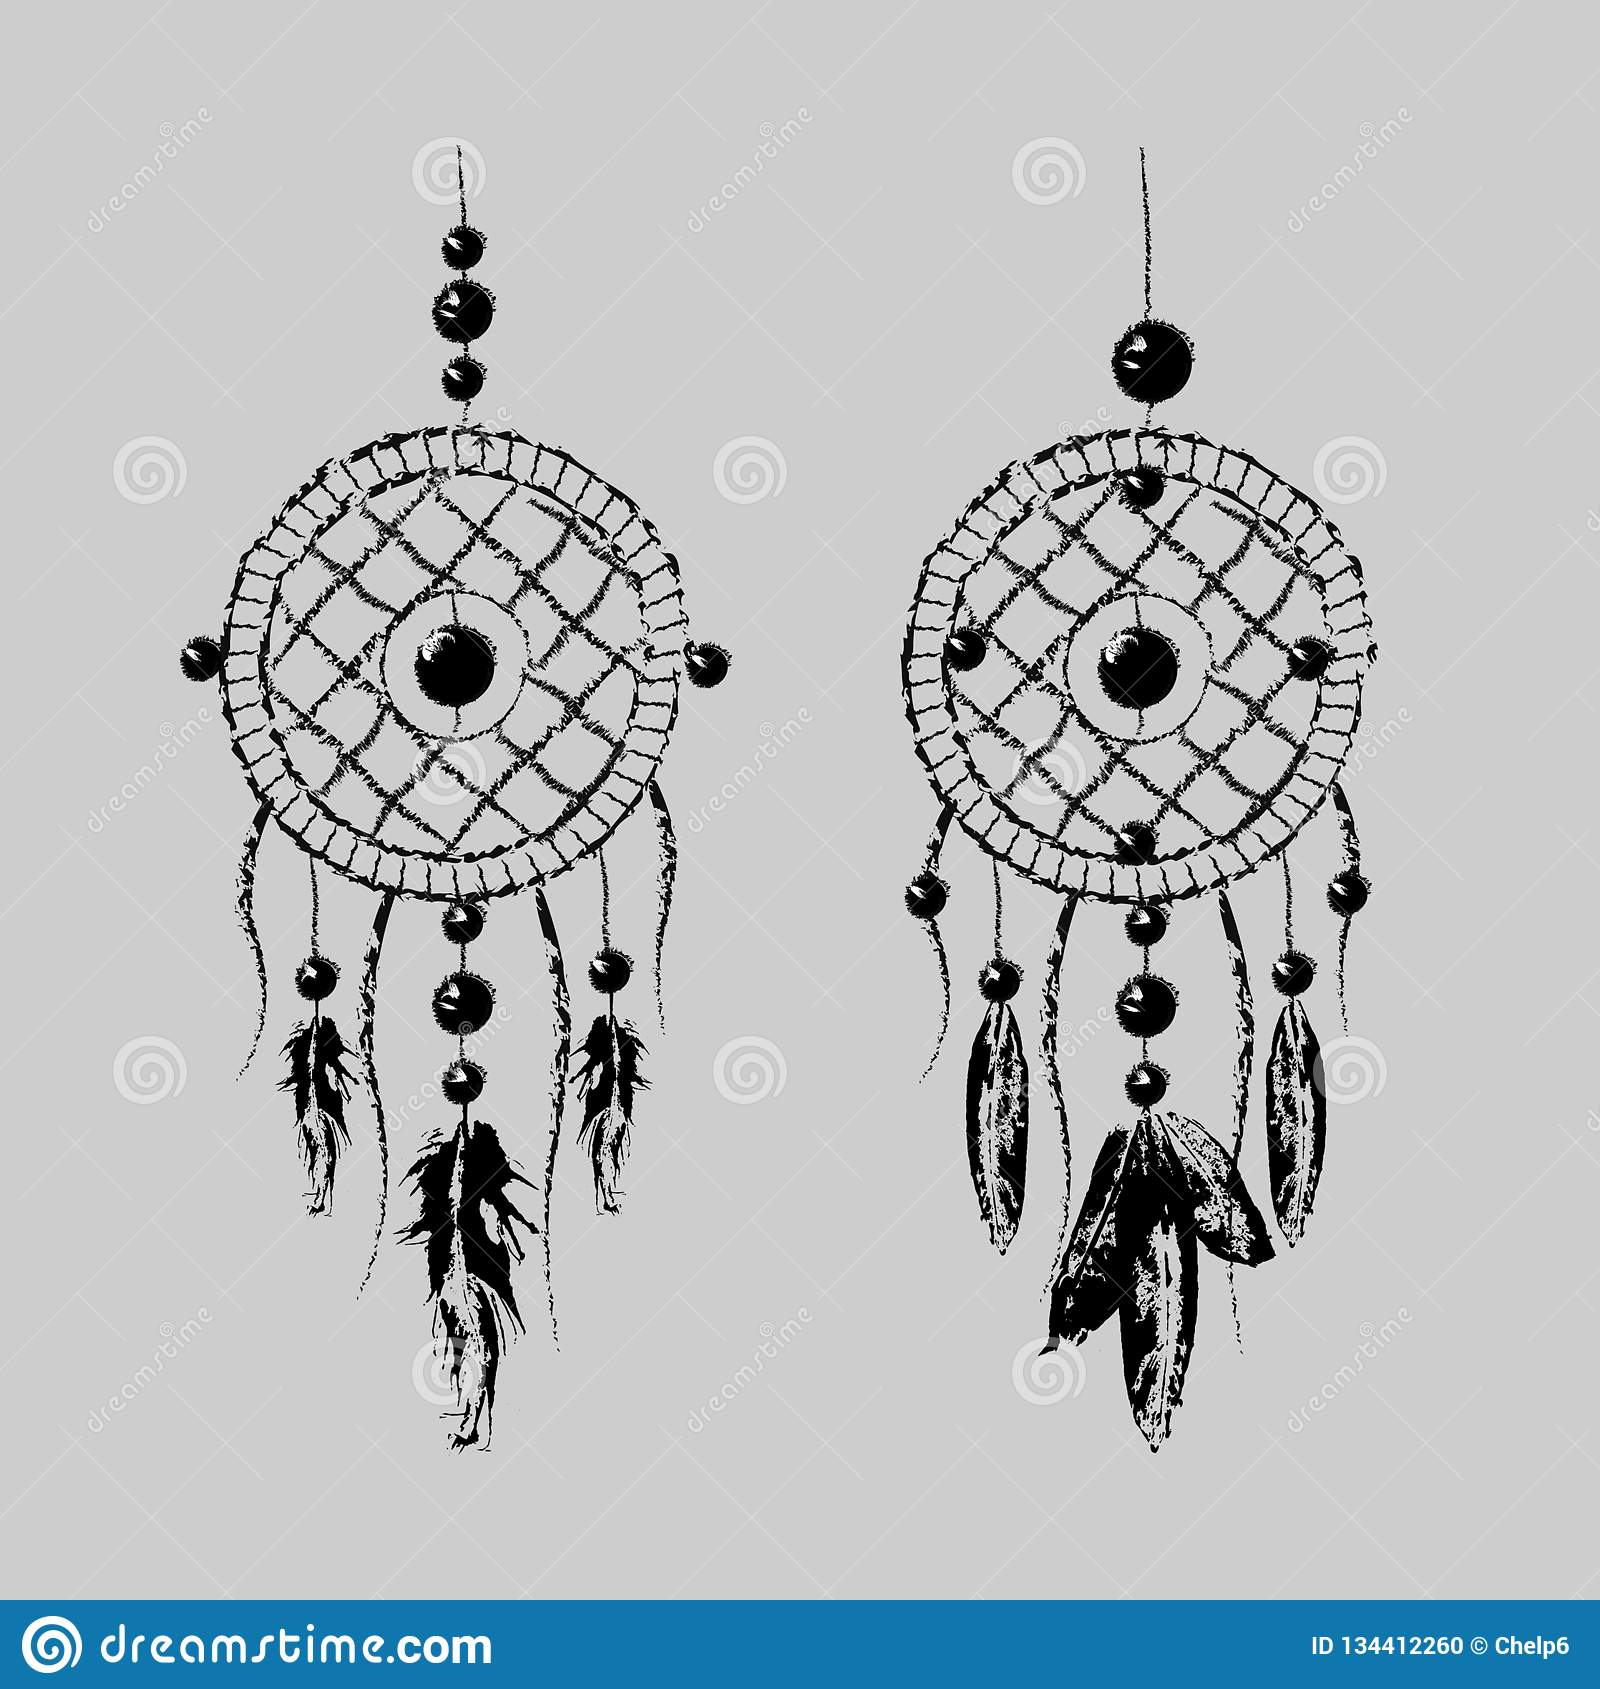 f98a701a1 Grunge Dreamcatcher with feathers and branches. Sweet dream. Native  American Indian talisman. Boho